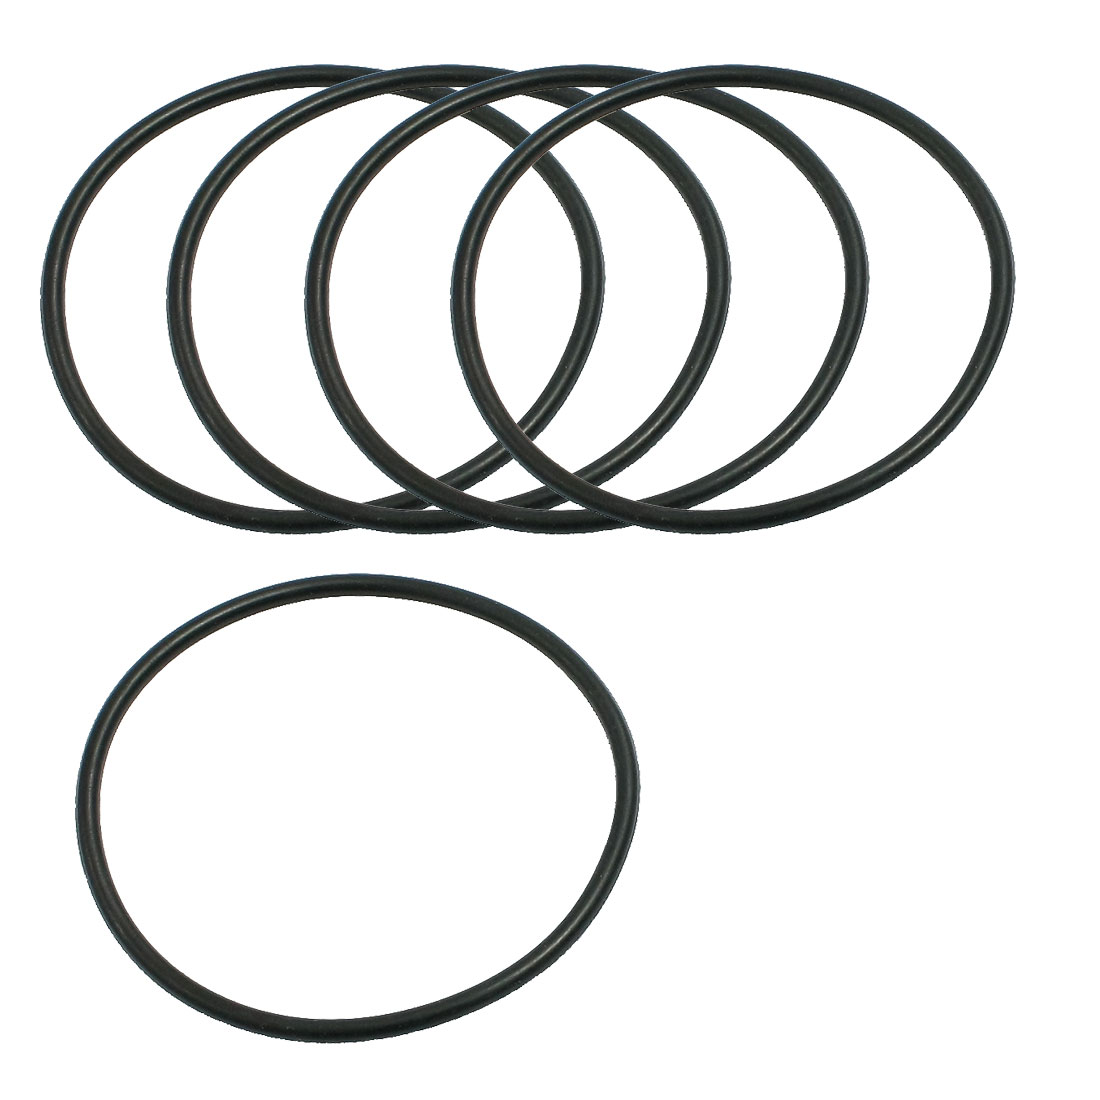 5 Pcs 53mm x 2.65mm Black Silicone O Rings Oil Seals Gaskets